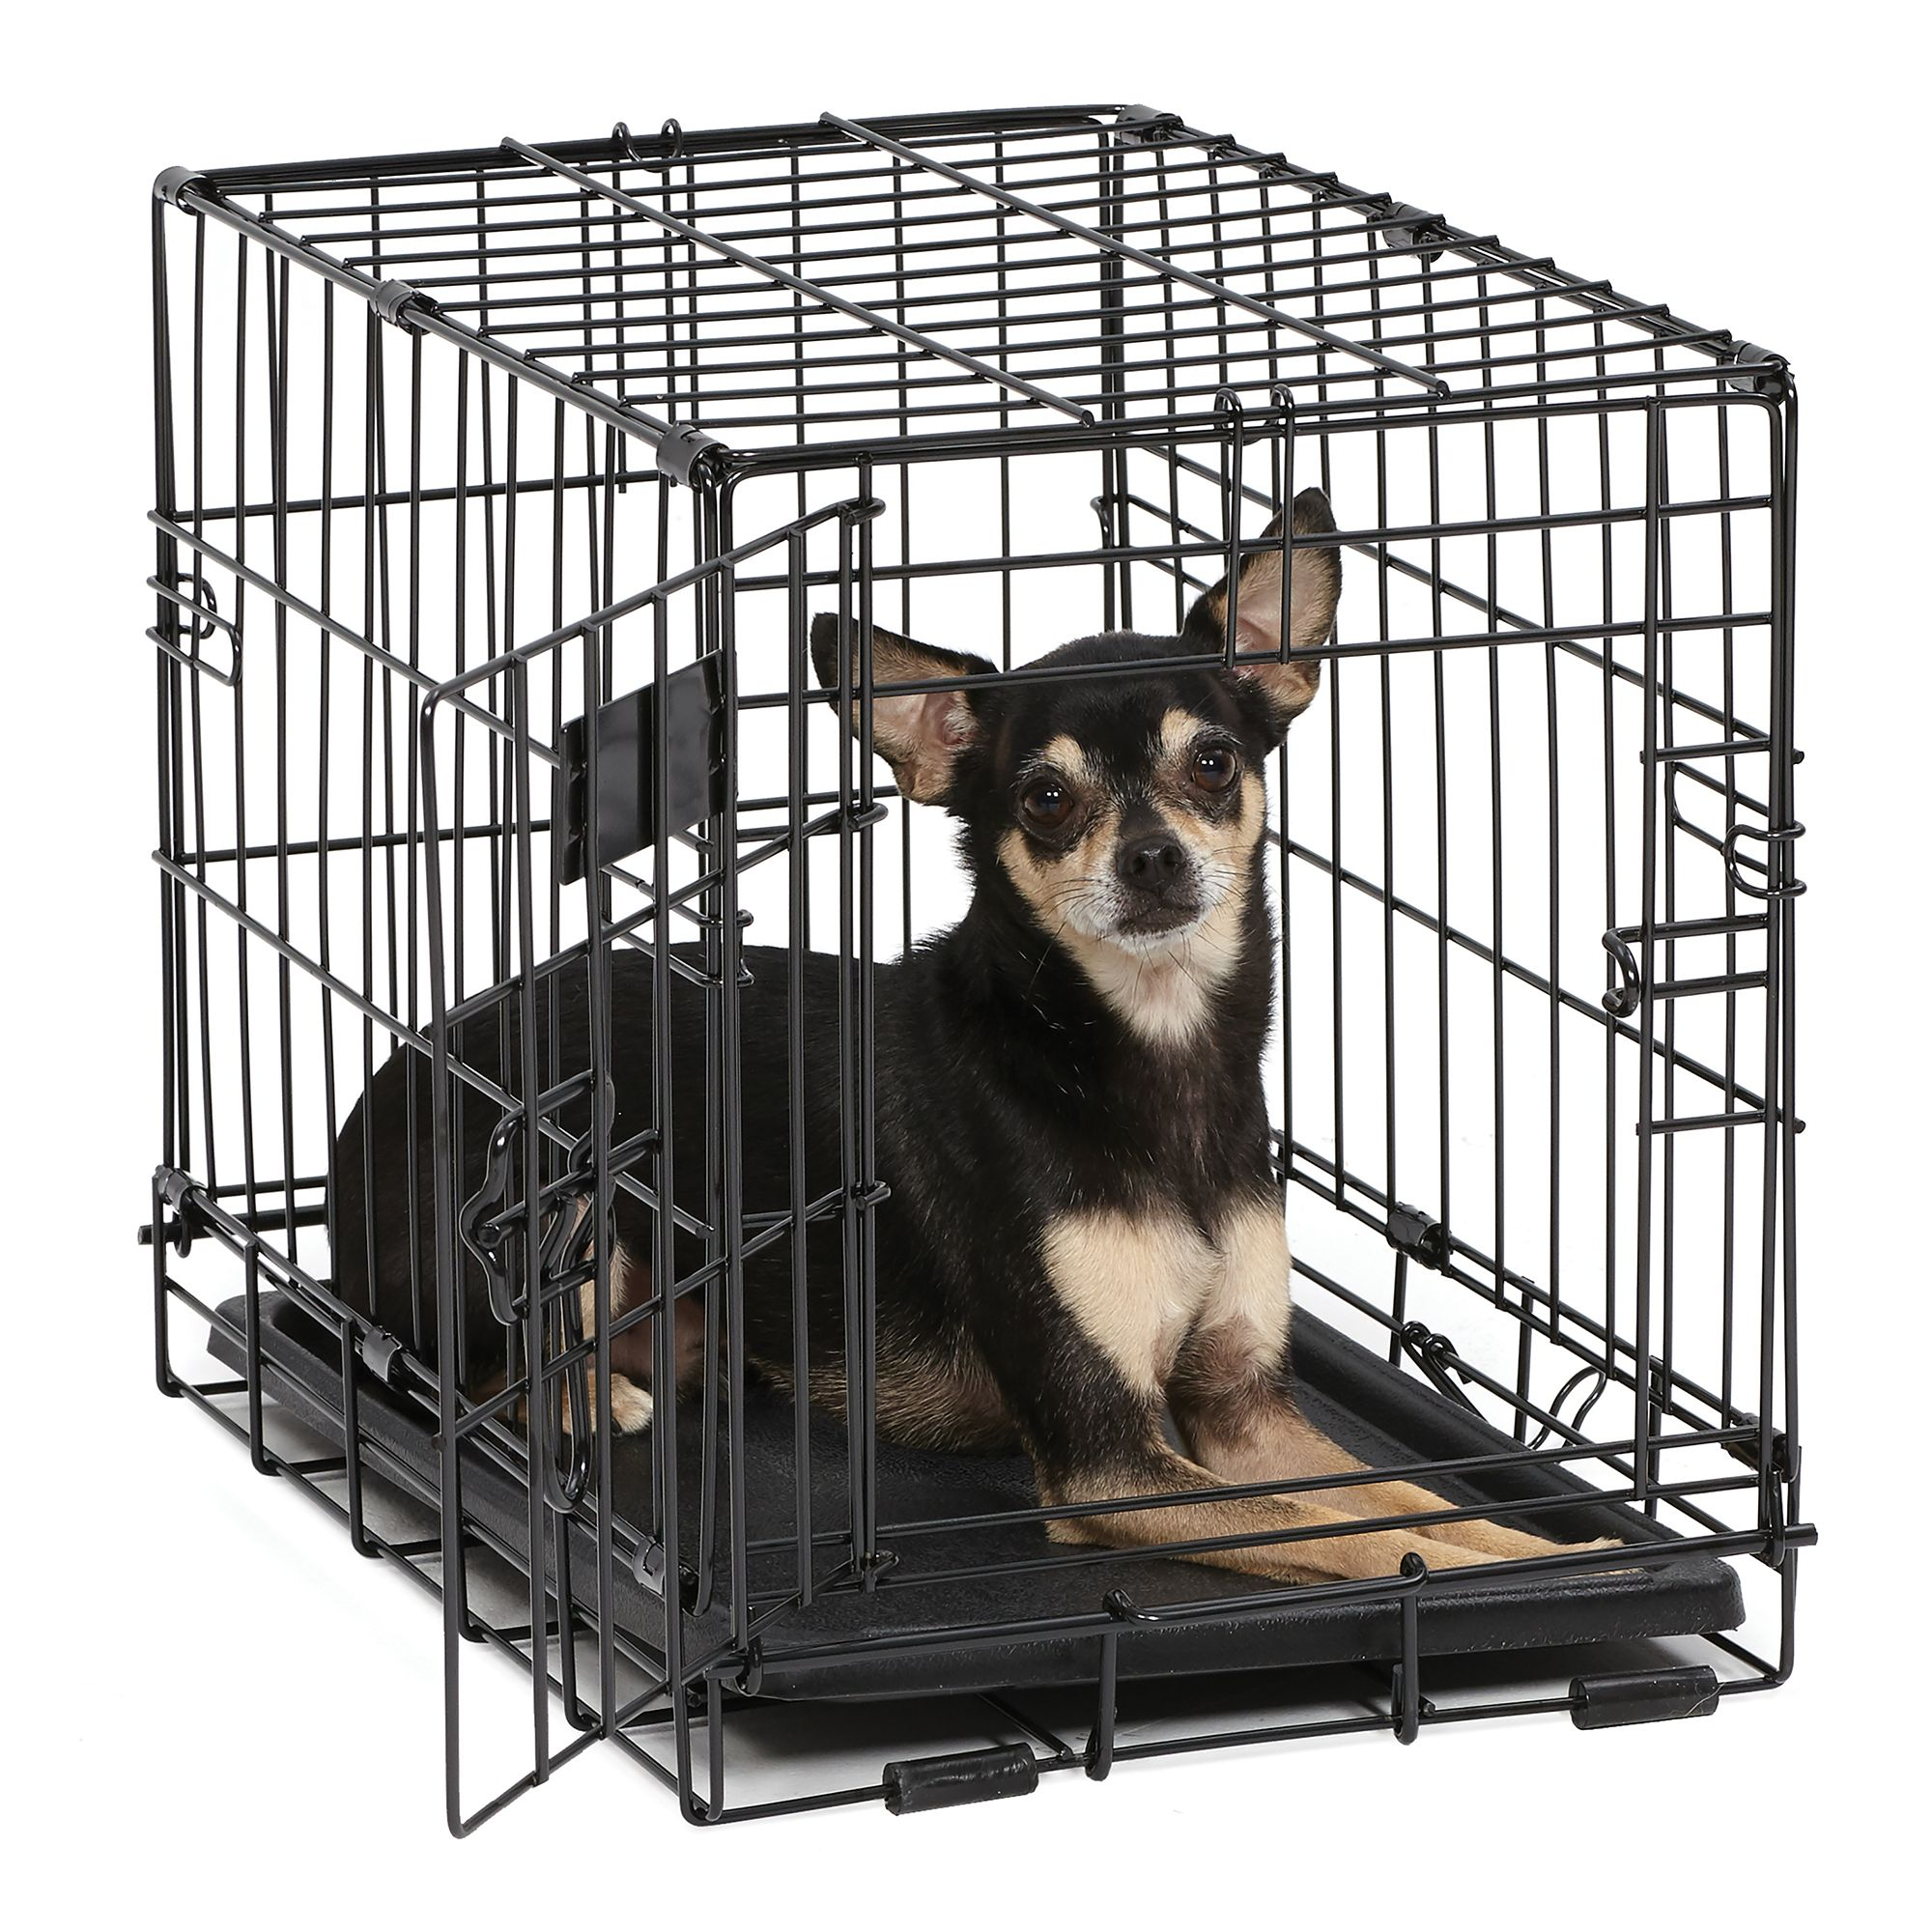 "Midwest iCrate Dog Crate size: 18""L x 12""W x 14""H, Black 5142220"